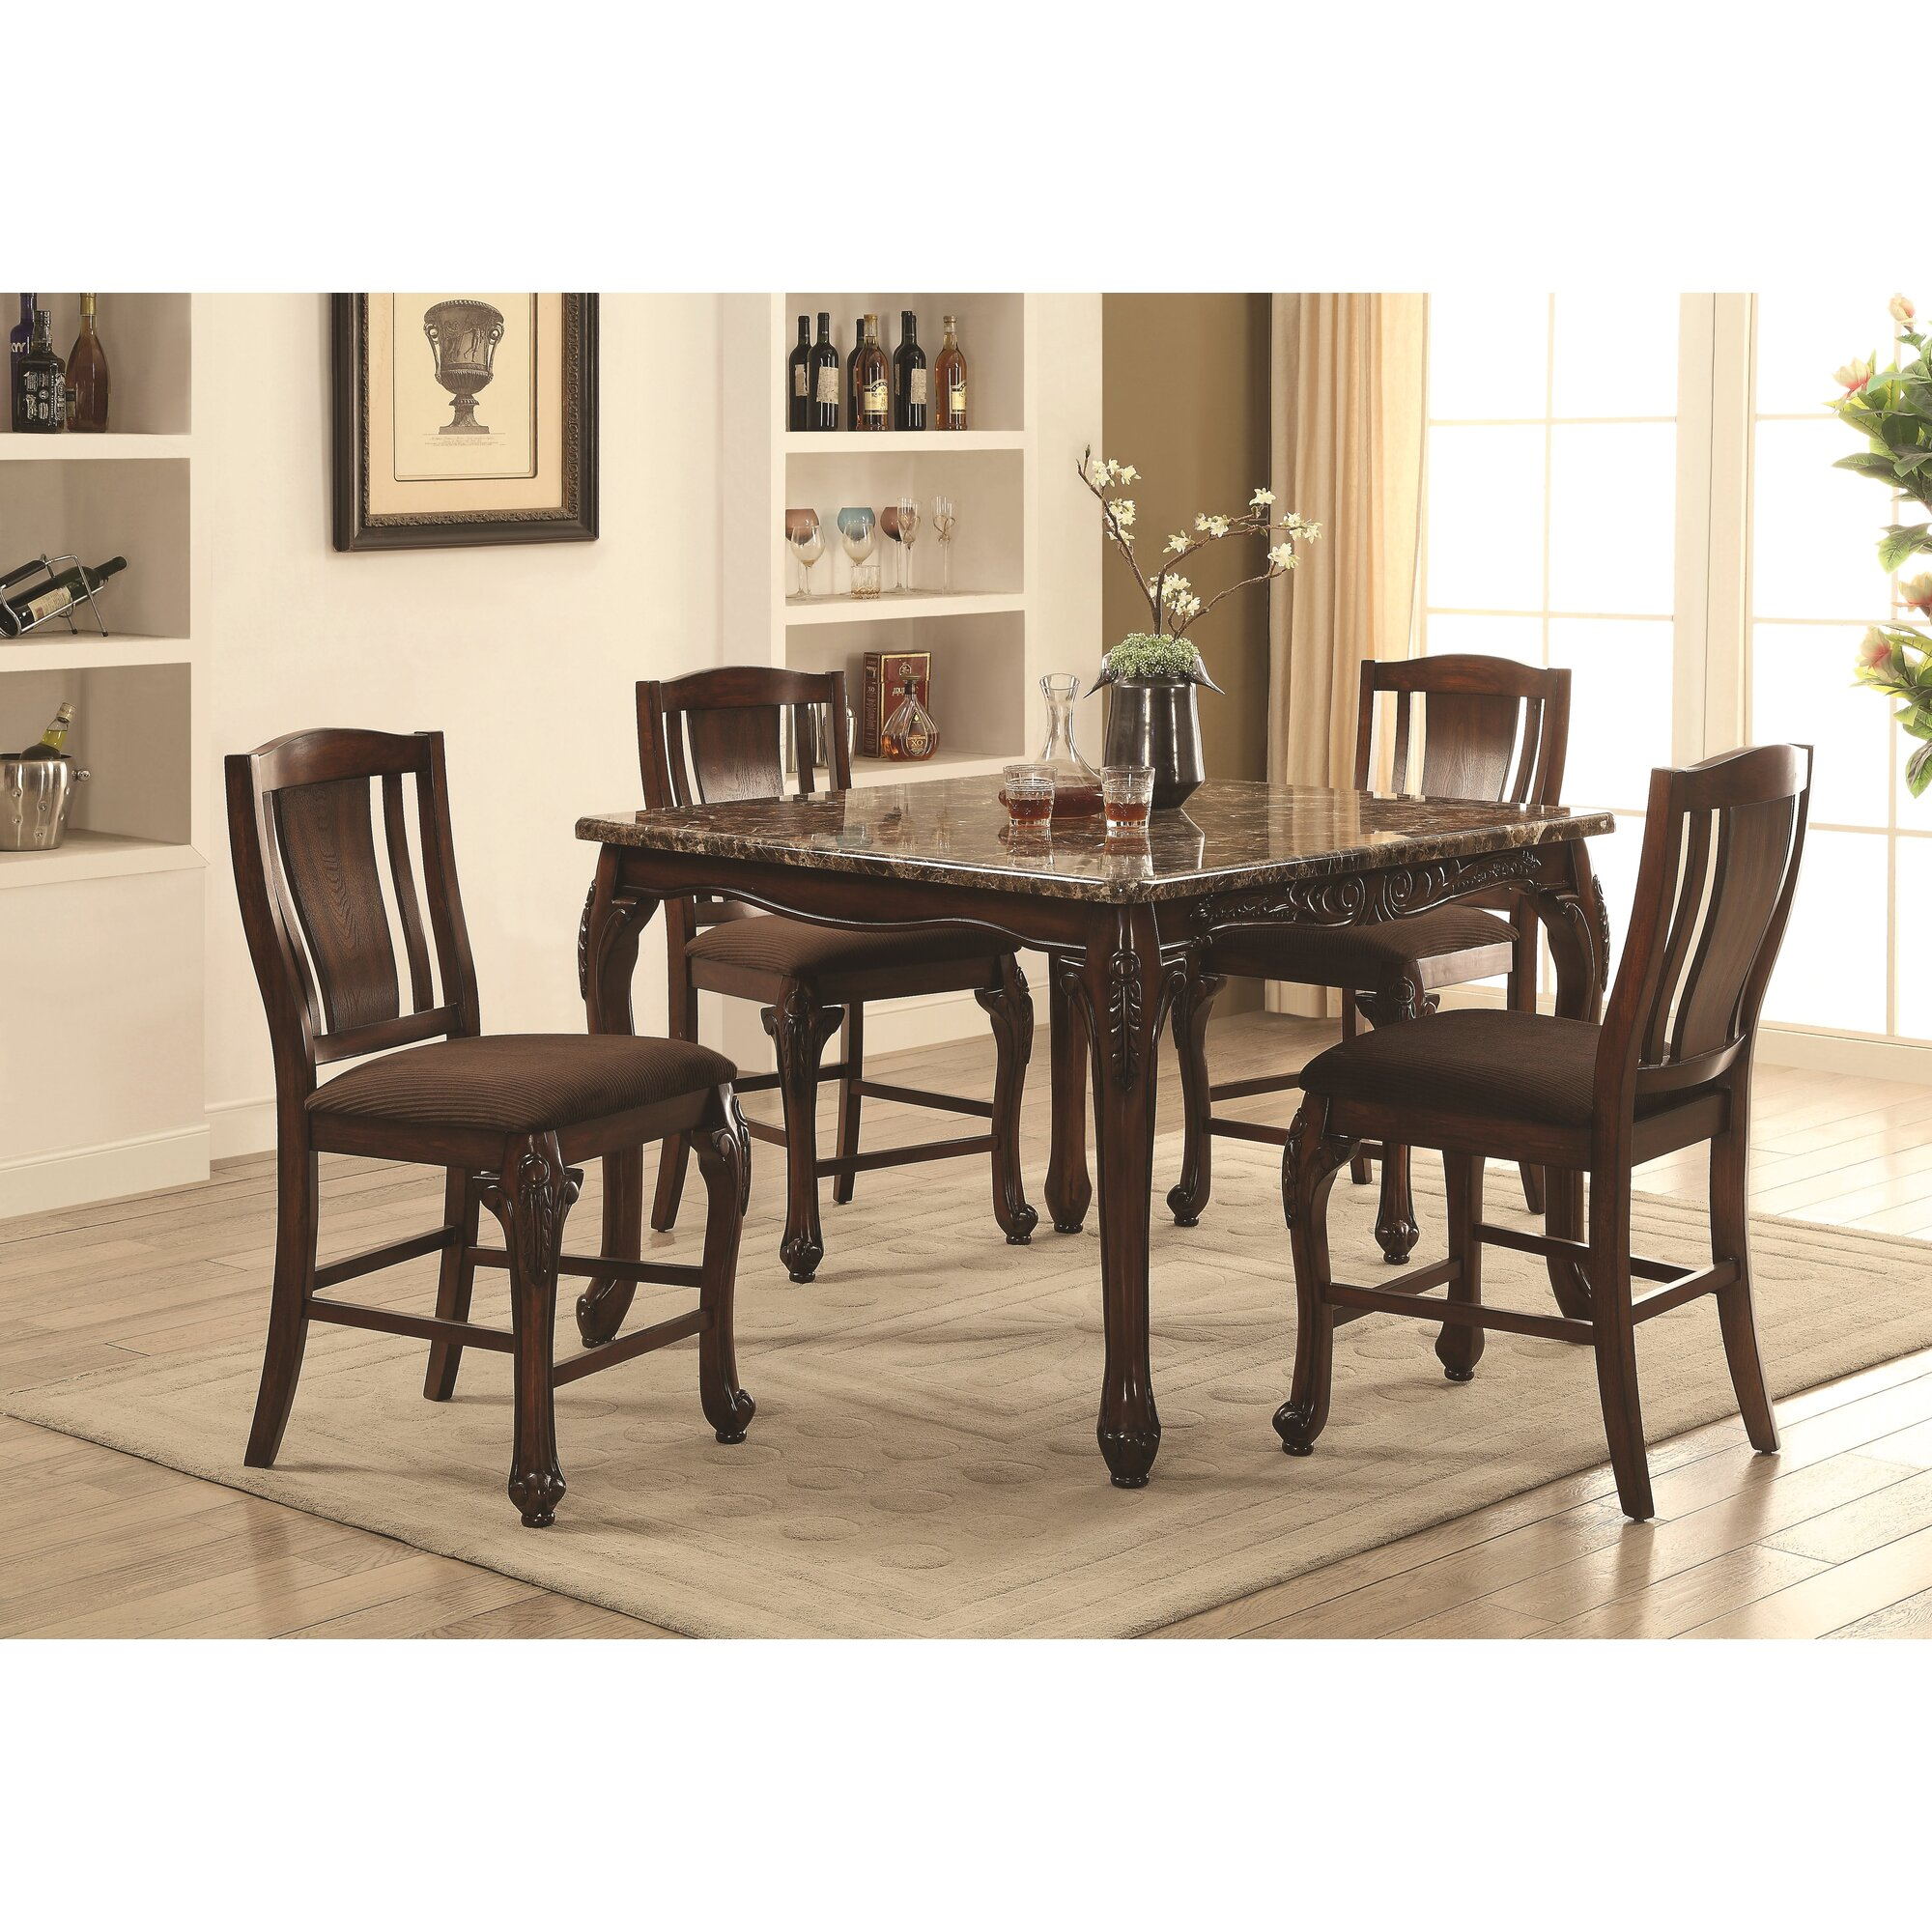 astoria grand dominey 5 piece counter height dining set